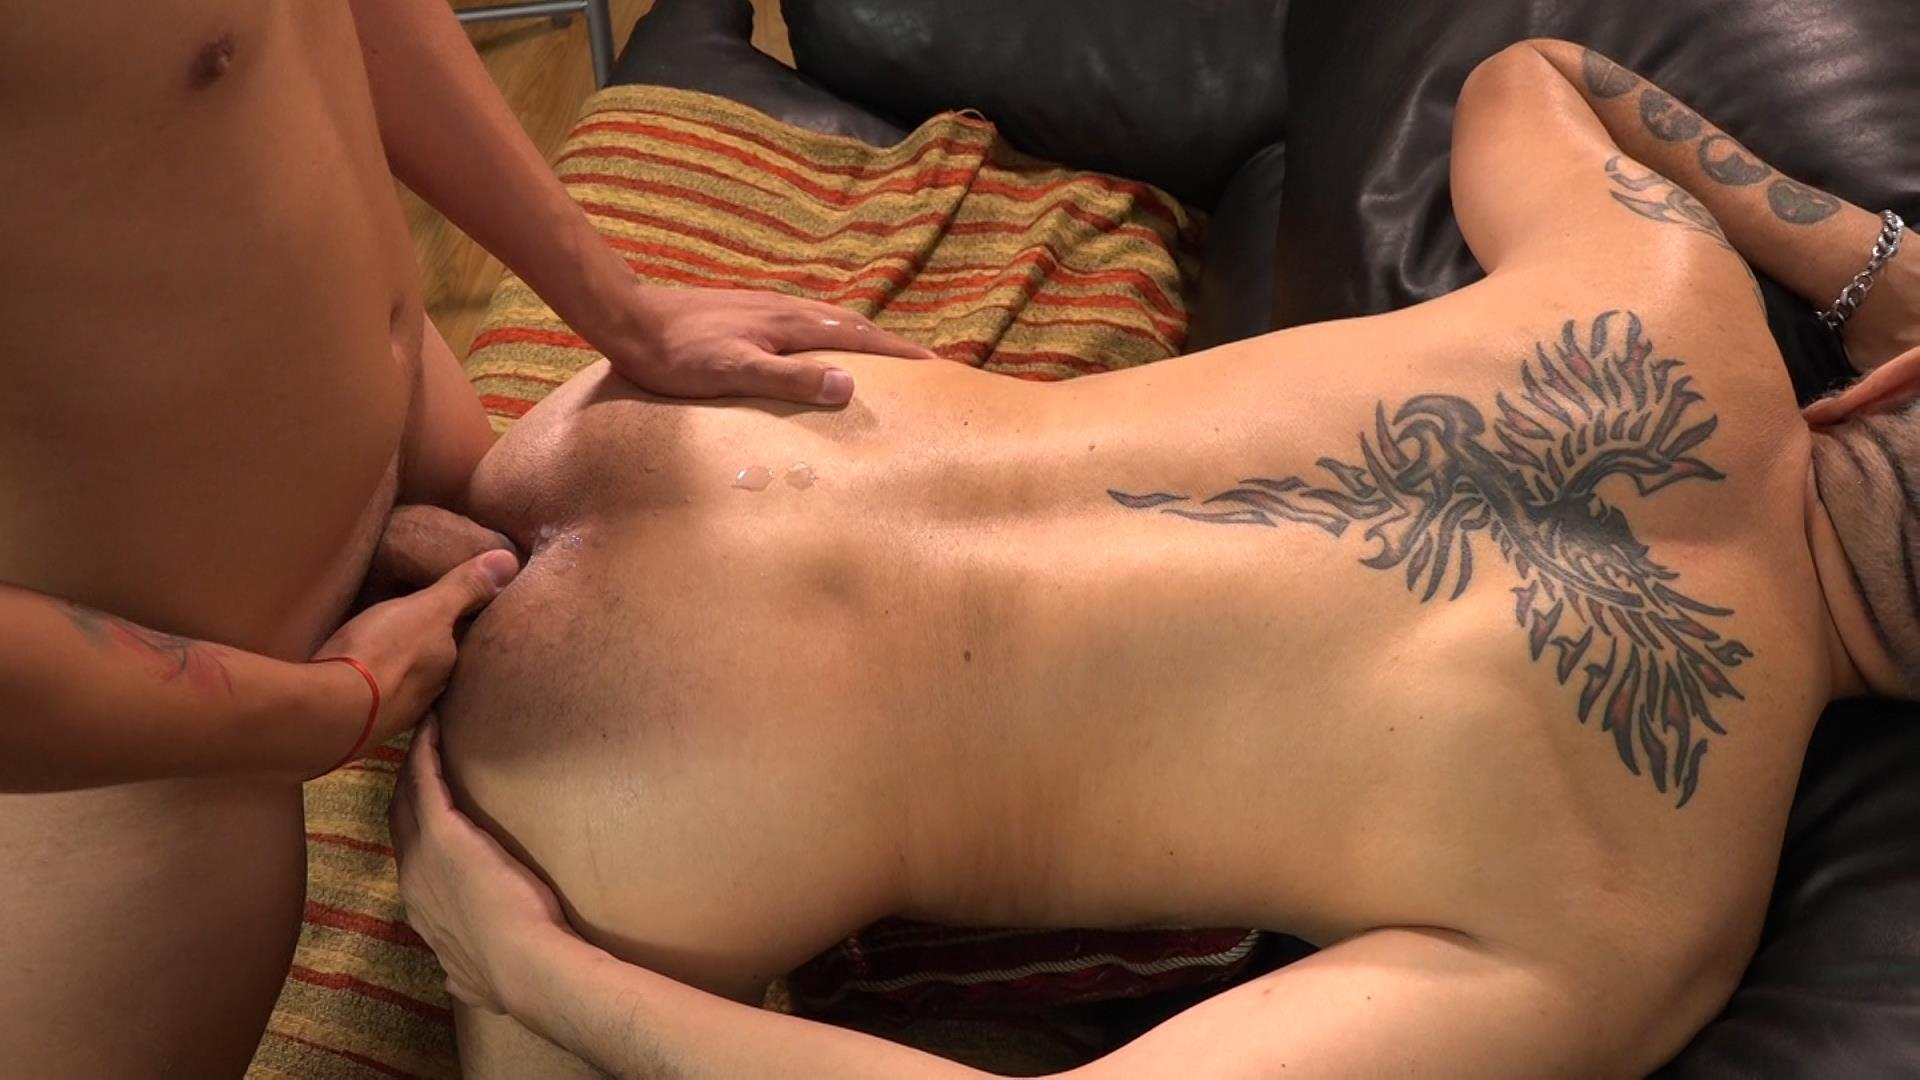 Bareback-Me-Daddy-Cedric-and-Migue-Young-Guy-Barebacks-Daddy-25 Daddy Seduces Young Man And Takes A Bareback Cock Up The Ass